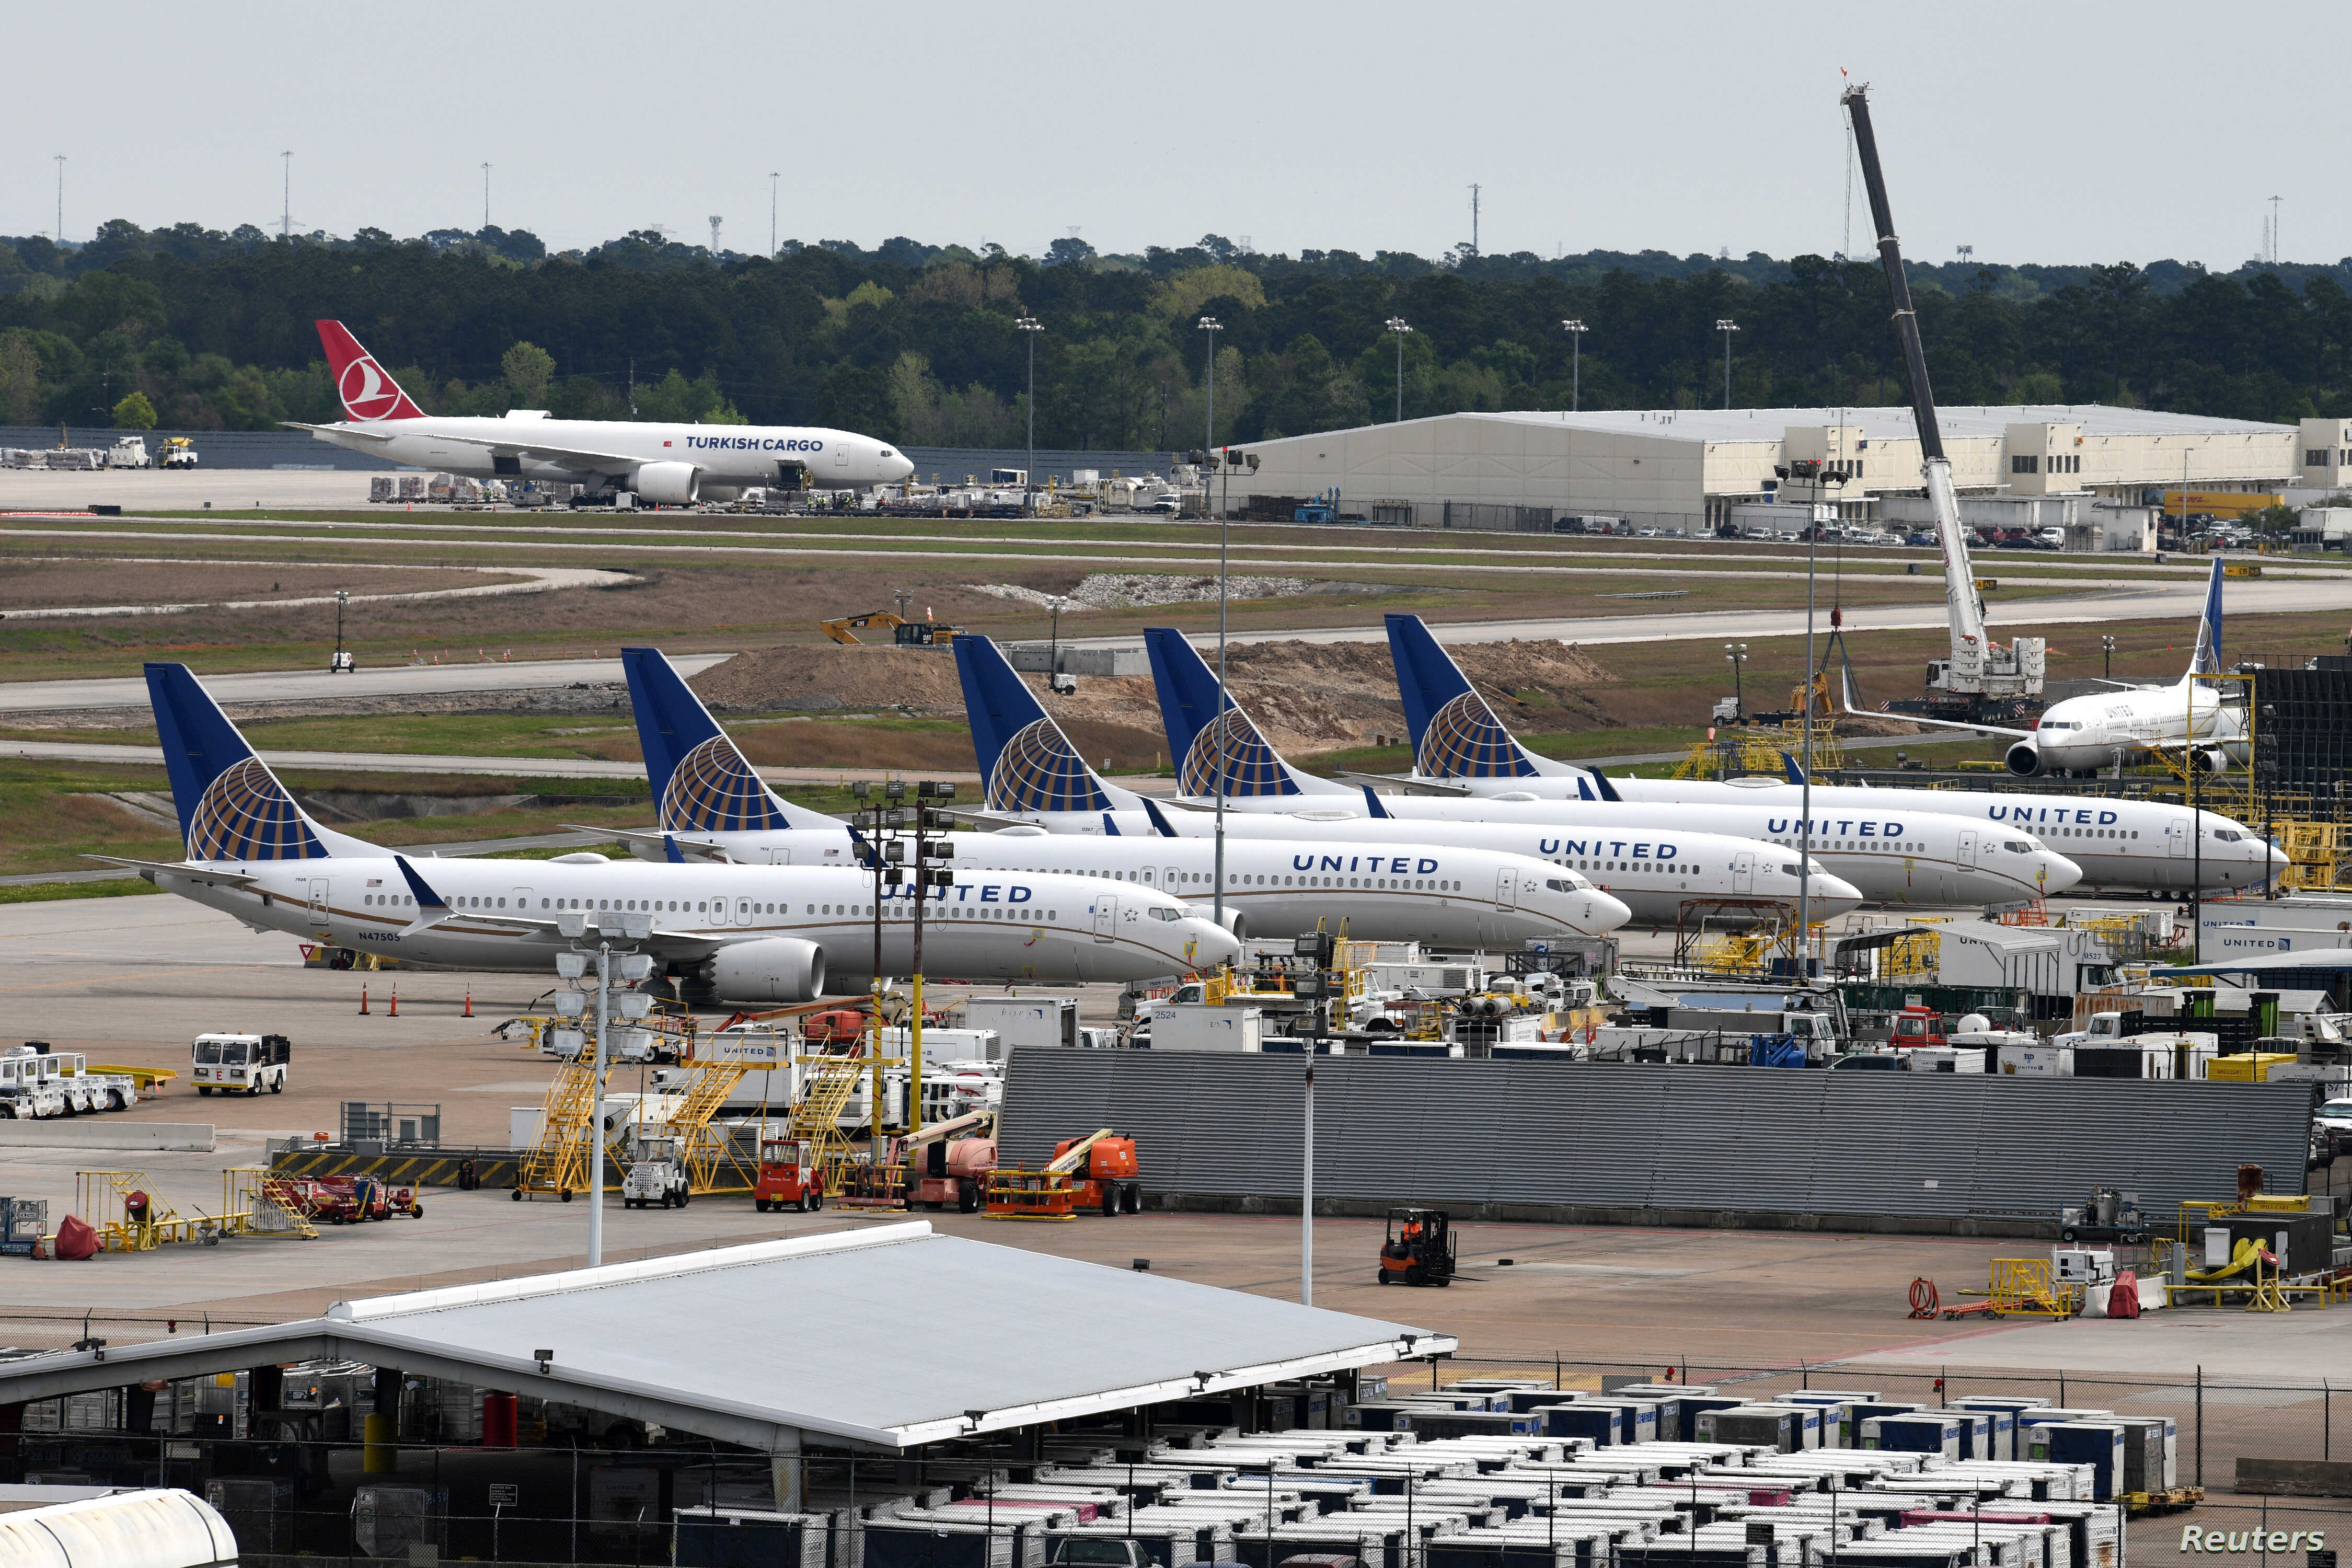 United Airlines planes, including a Boeing 737 MAX 9 model, are pictured at George Bush Intercontinental Airport in Houston, Texas, March 18, 2019.